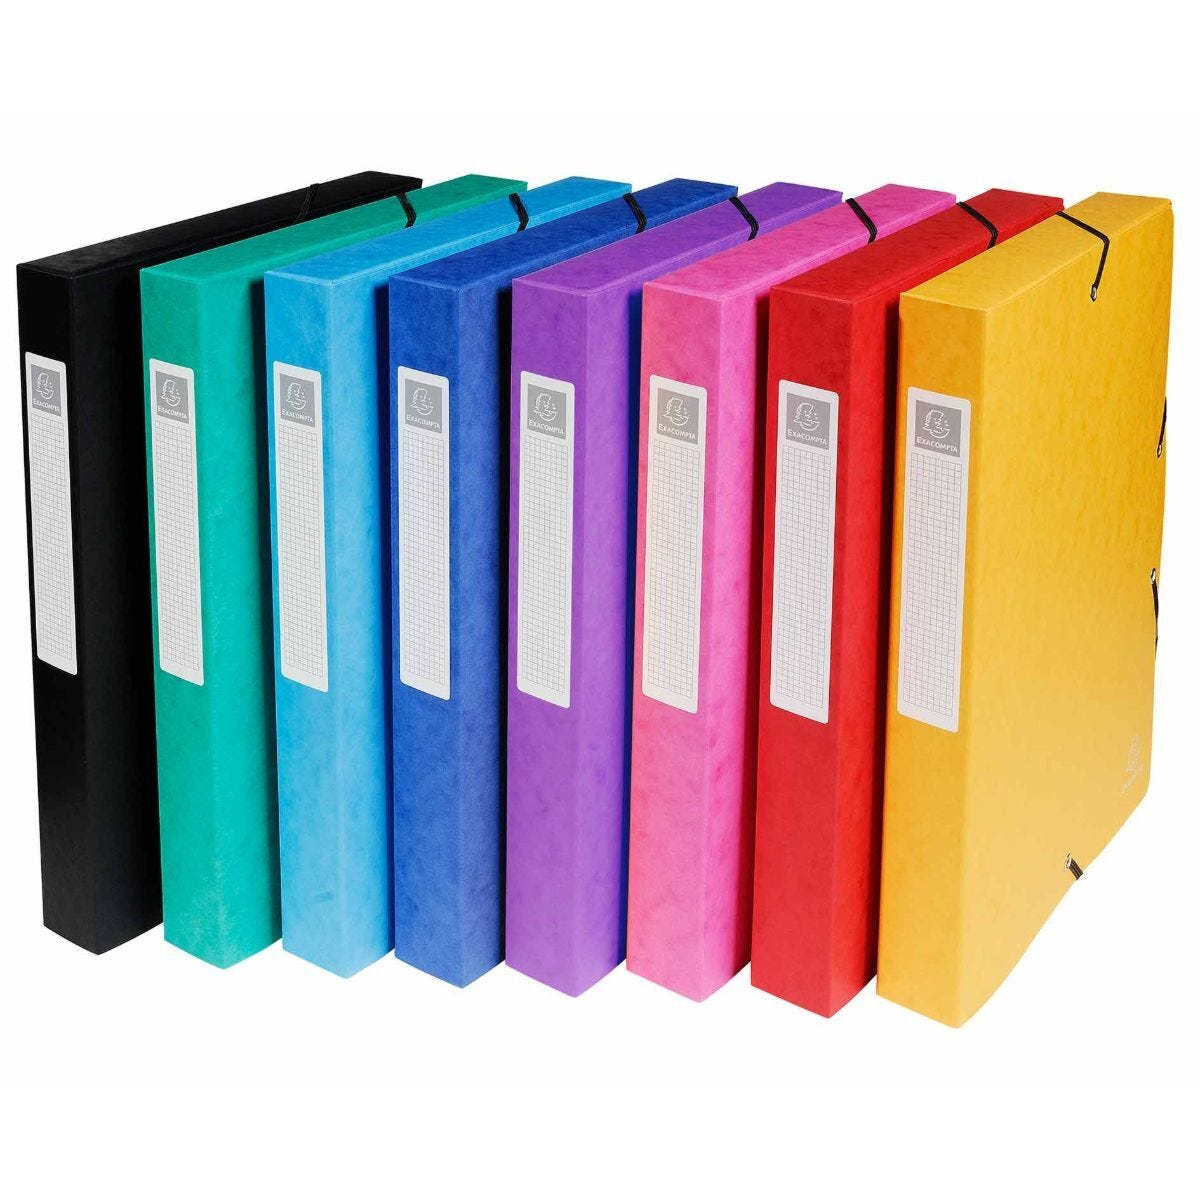 Exacompta Box File A4 40mm Pack of 5 Assorted